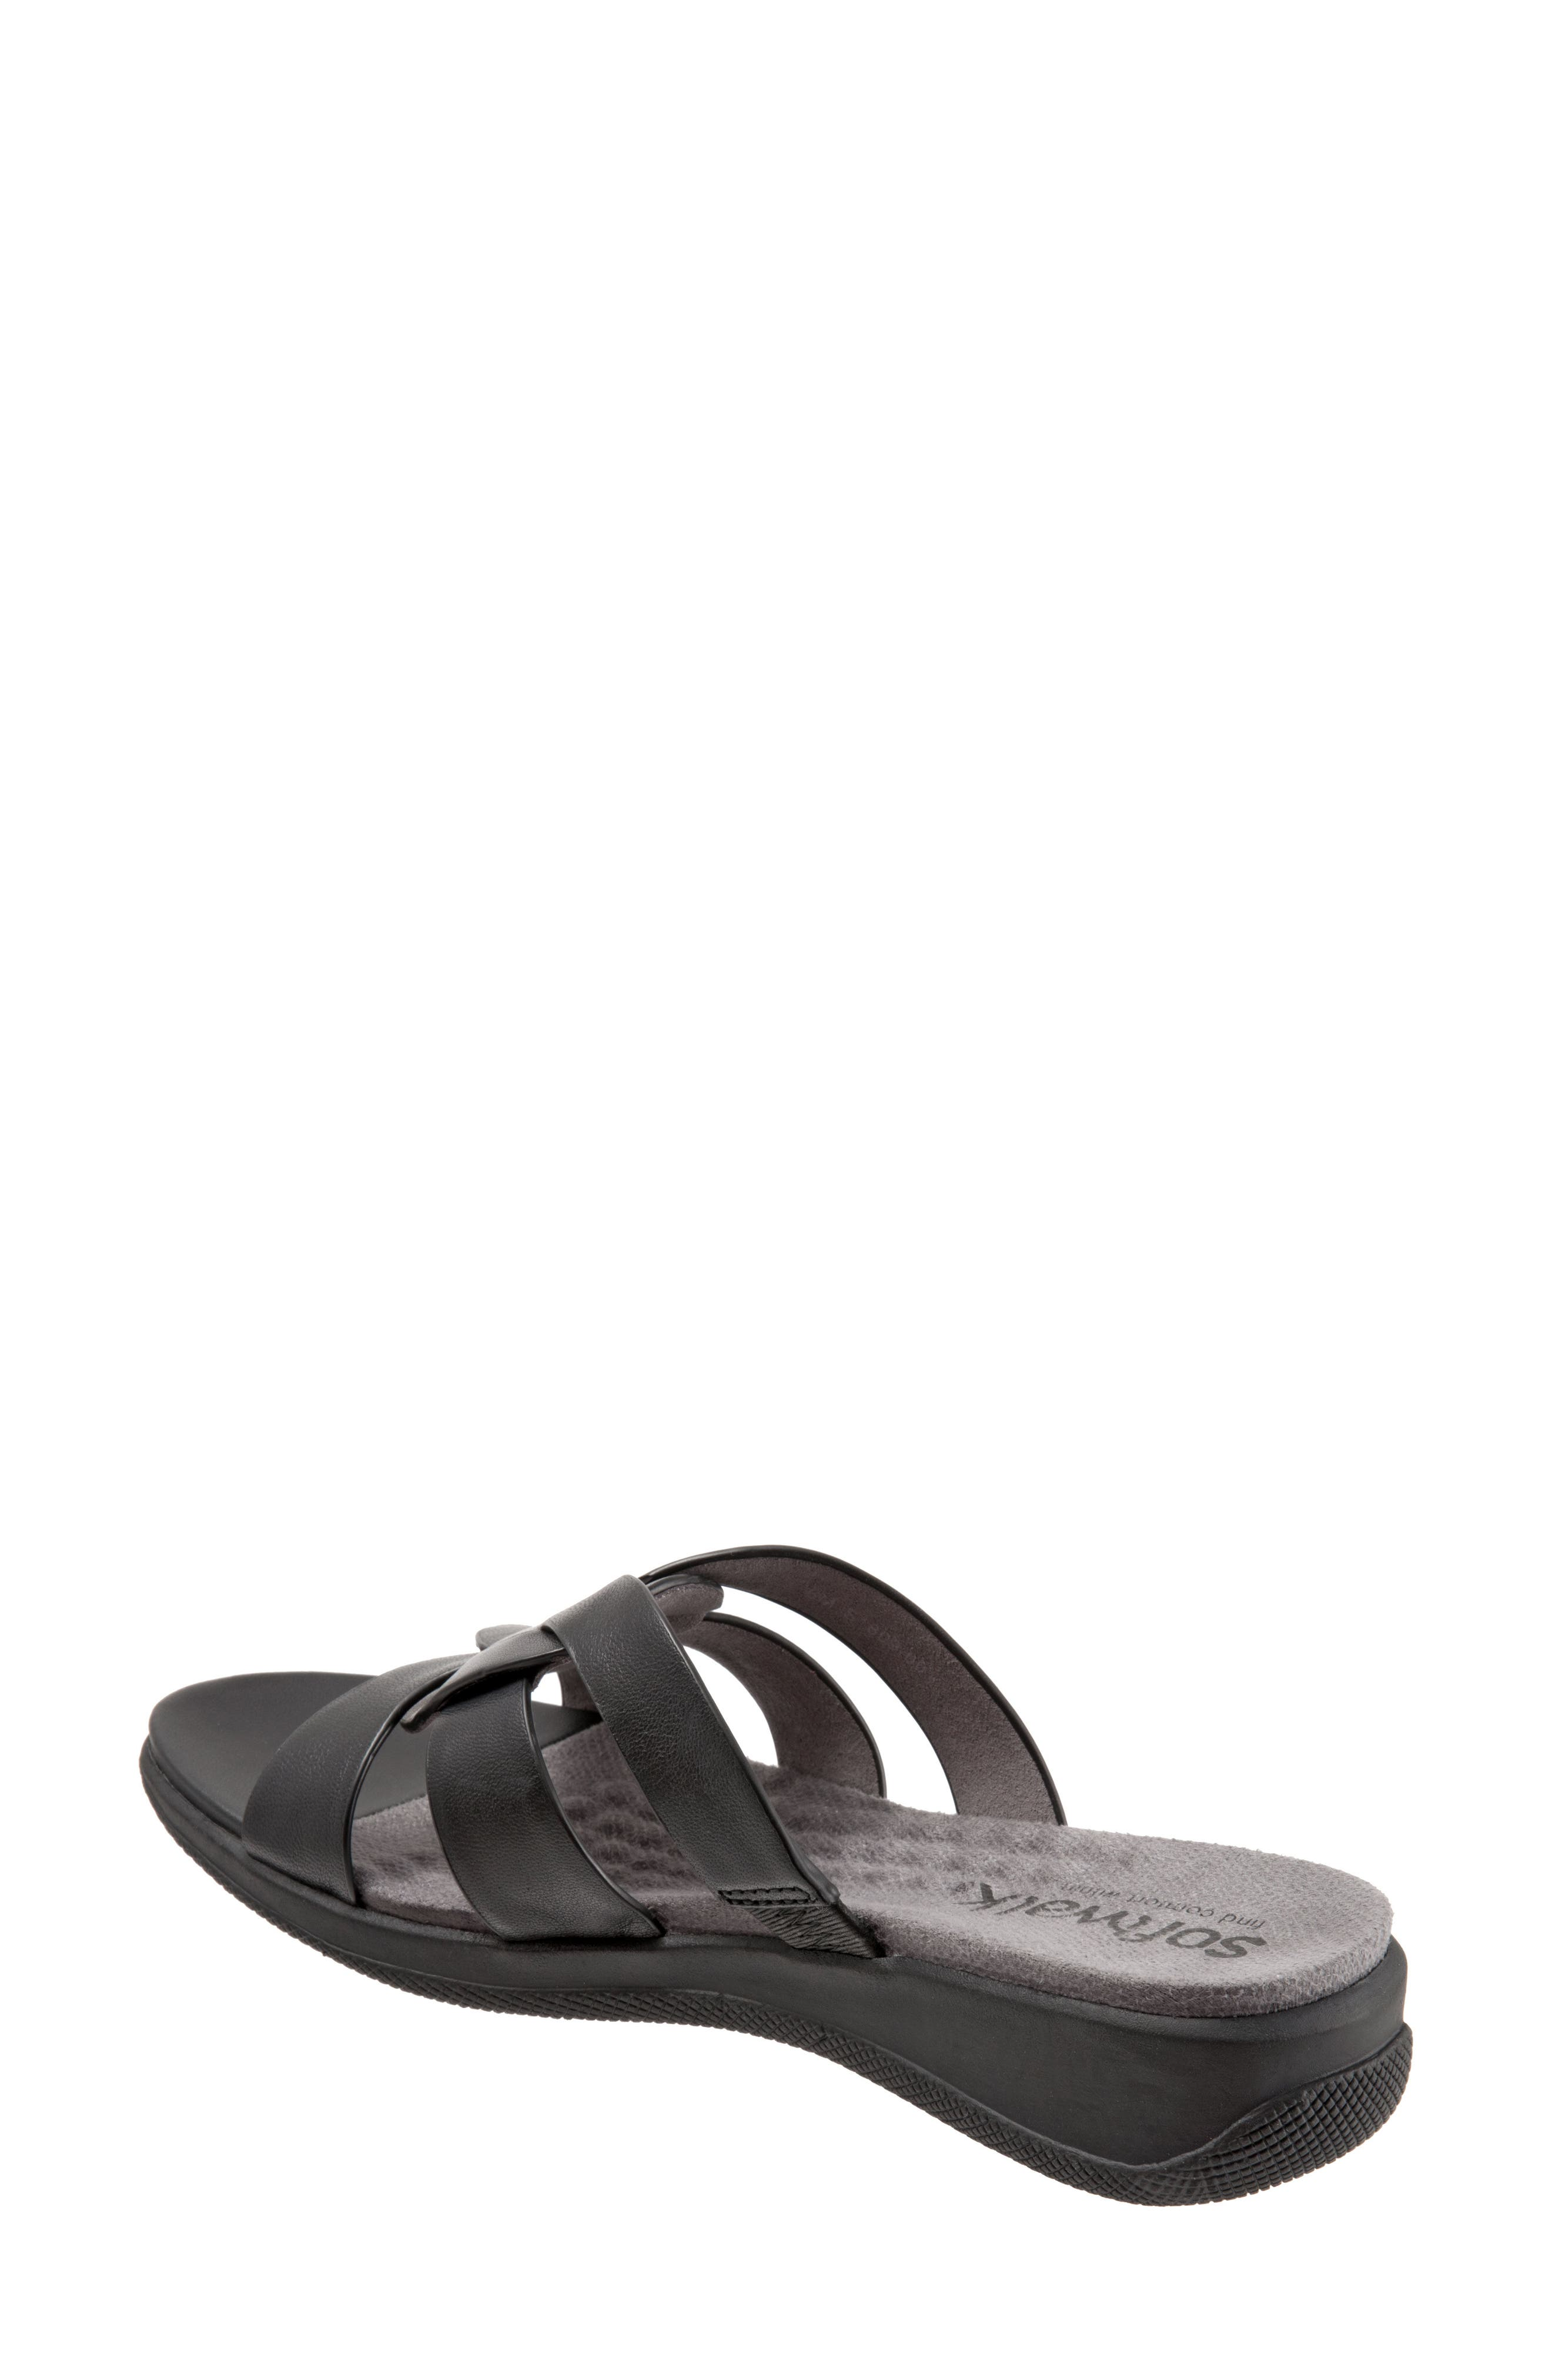 Thompson Slide Sandal,                             Alternate thumbnail 2, color,                             001